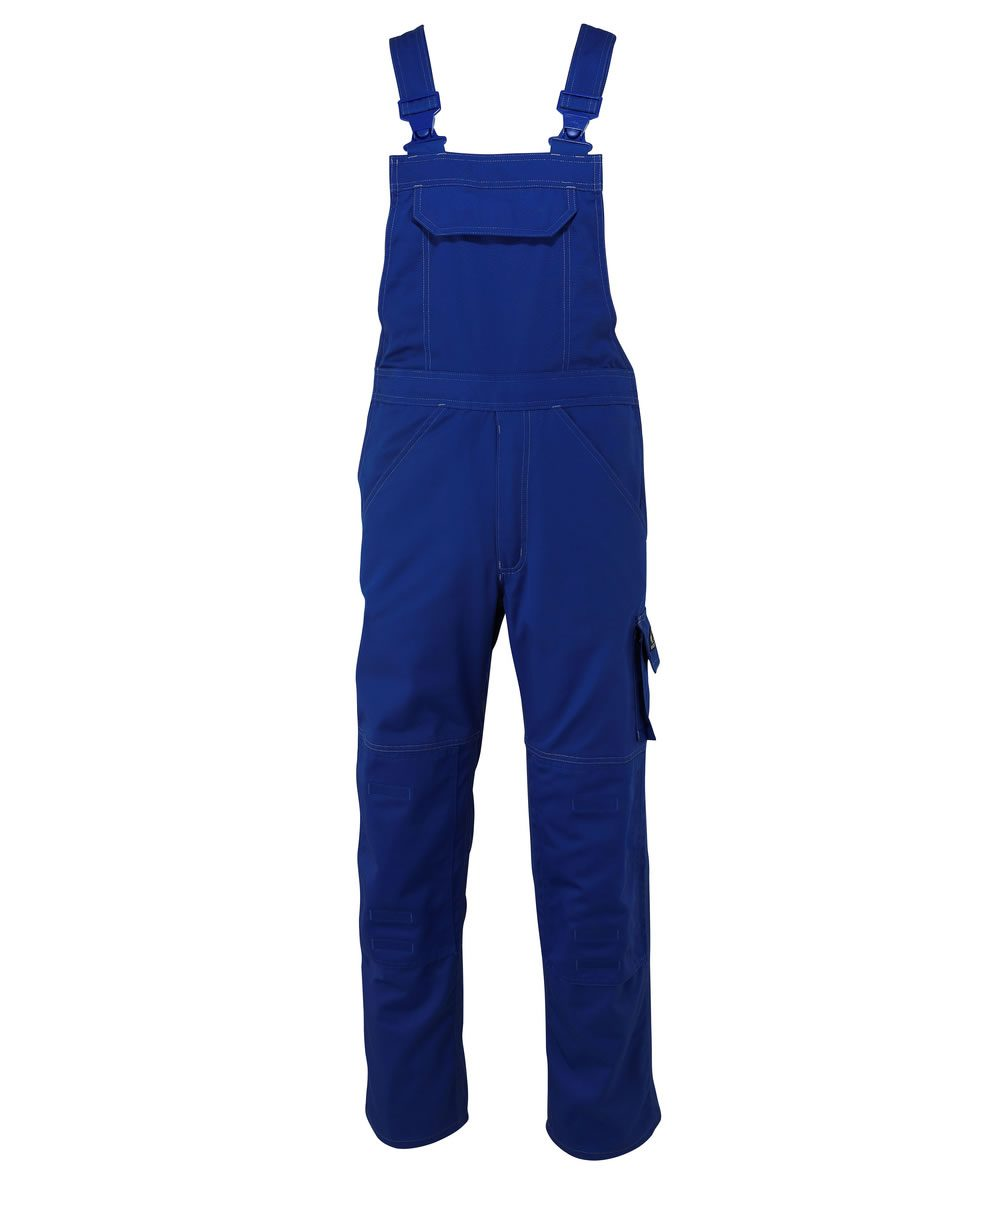 MASCOT® Newark Royal Blue